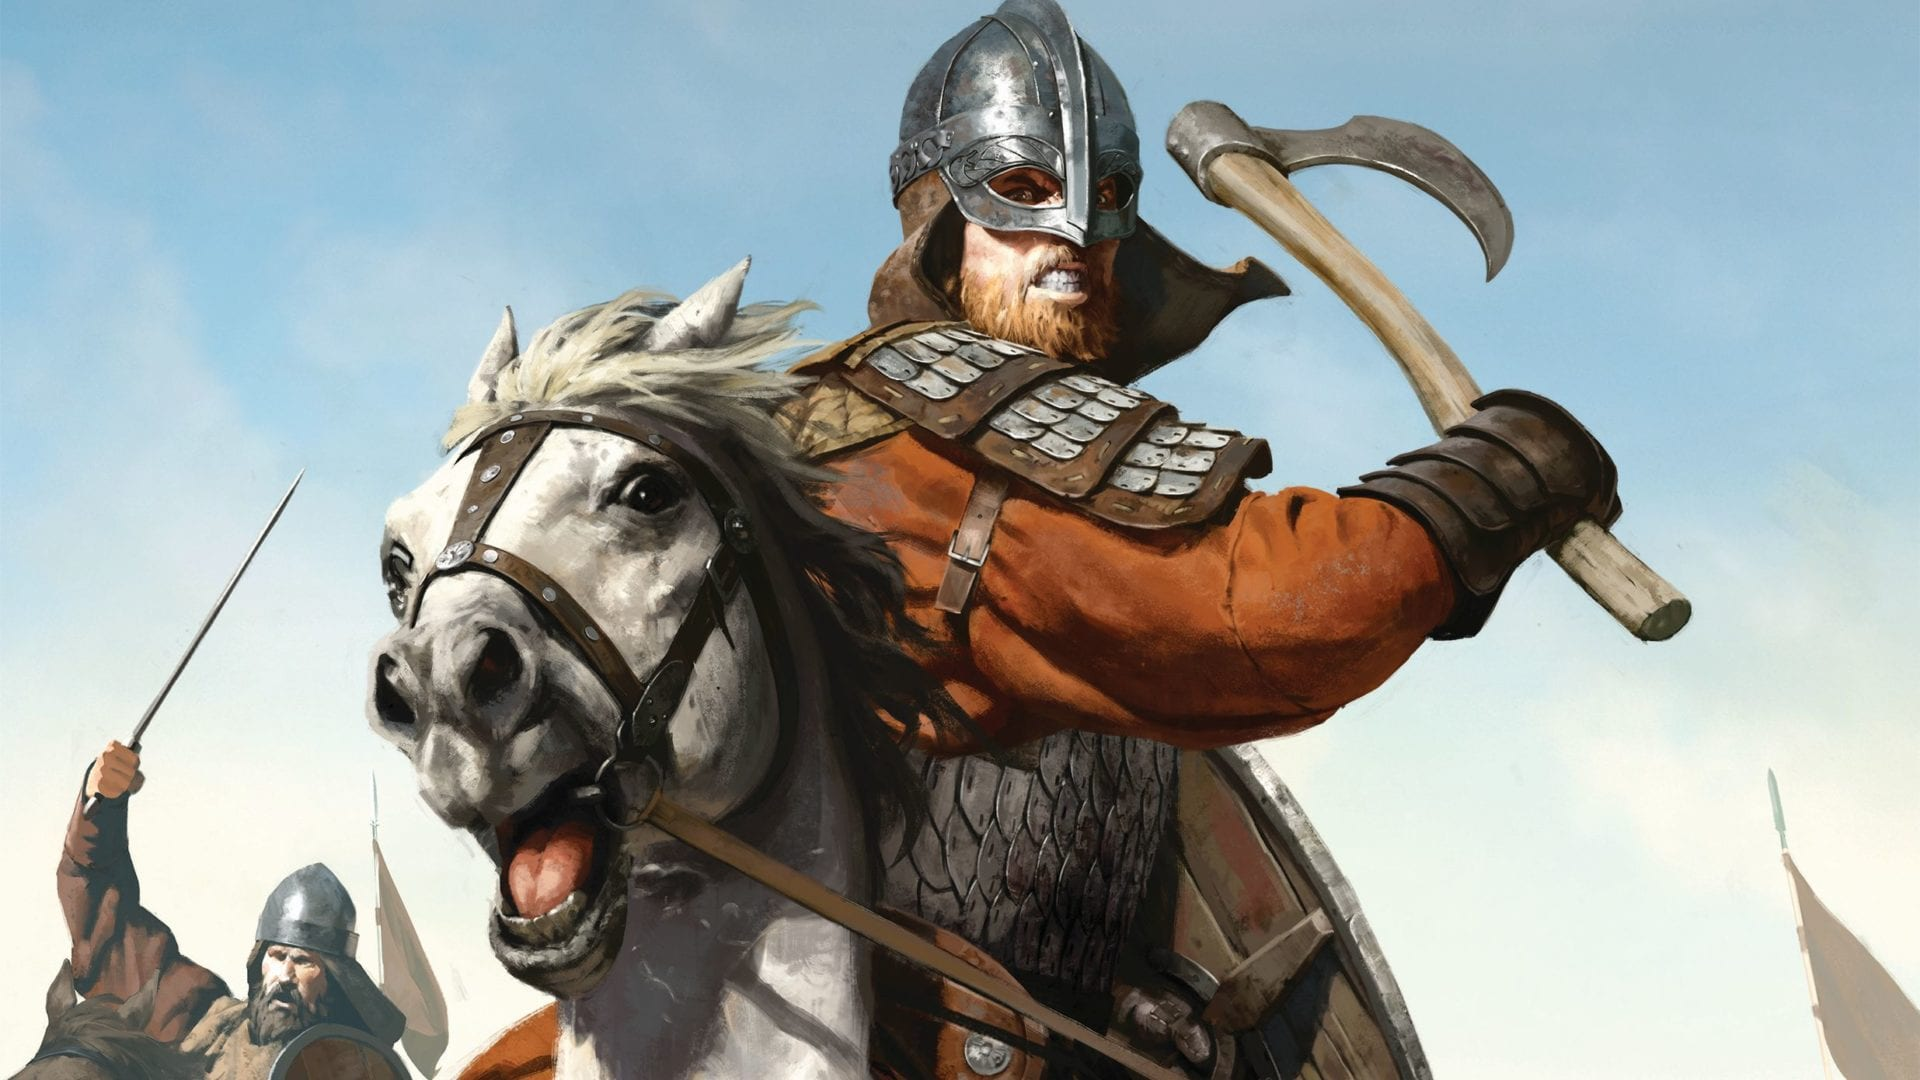 mount and blade, peace